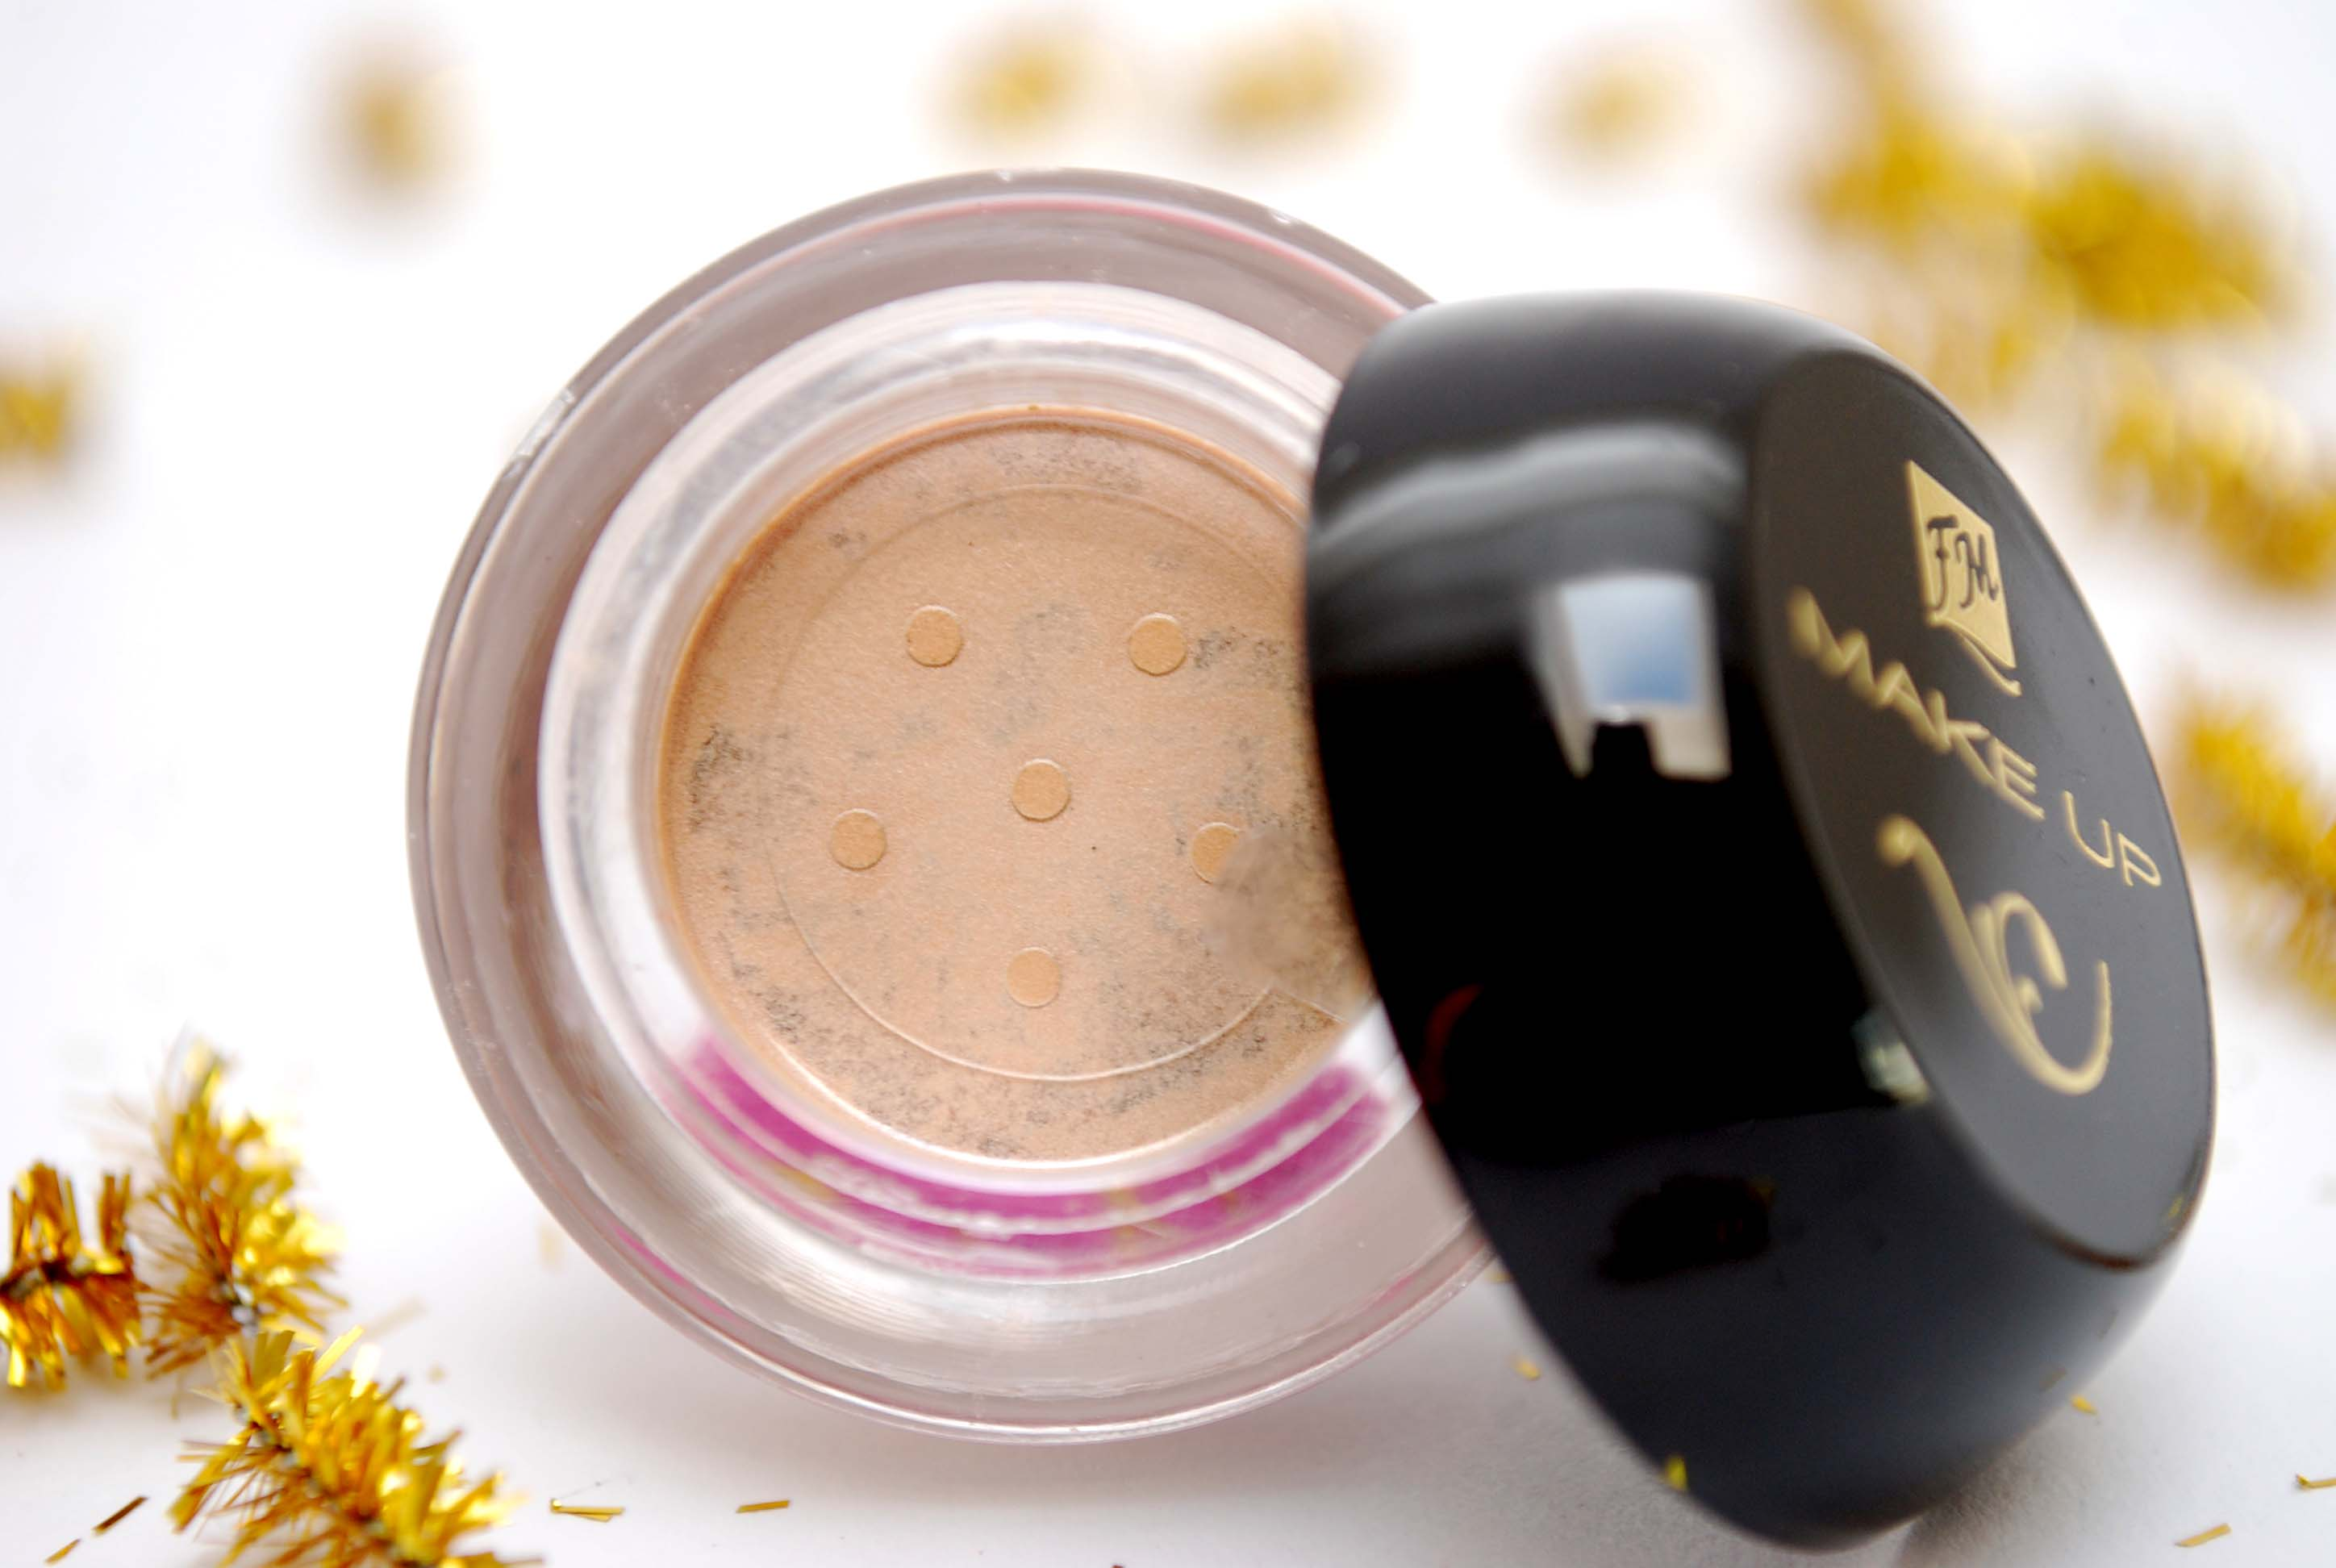 fm make up review eyeshadow powder loose mineral